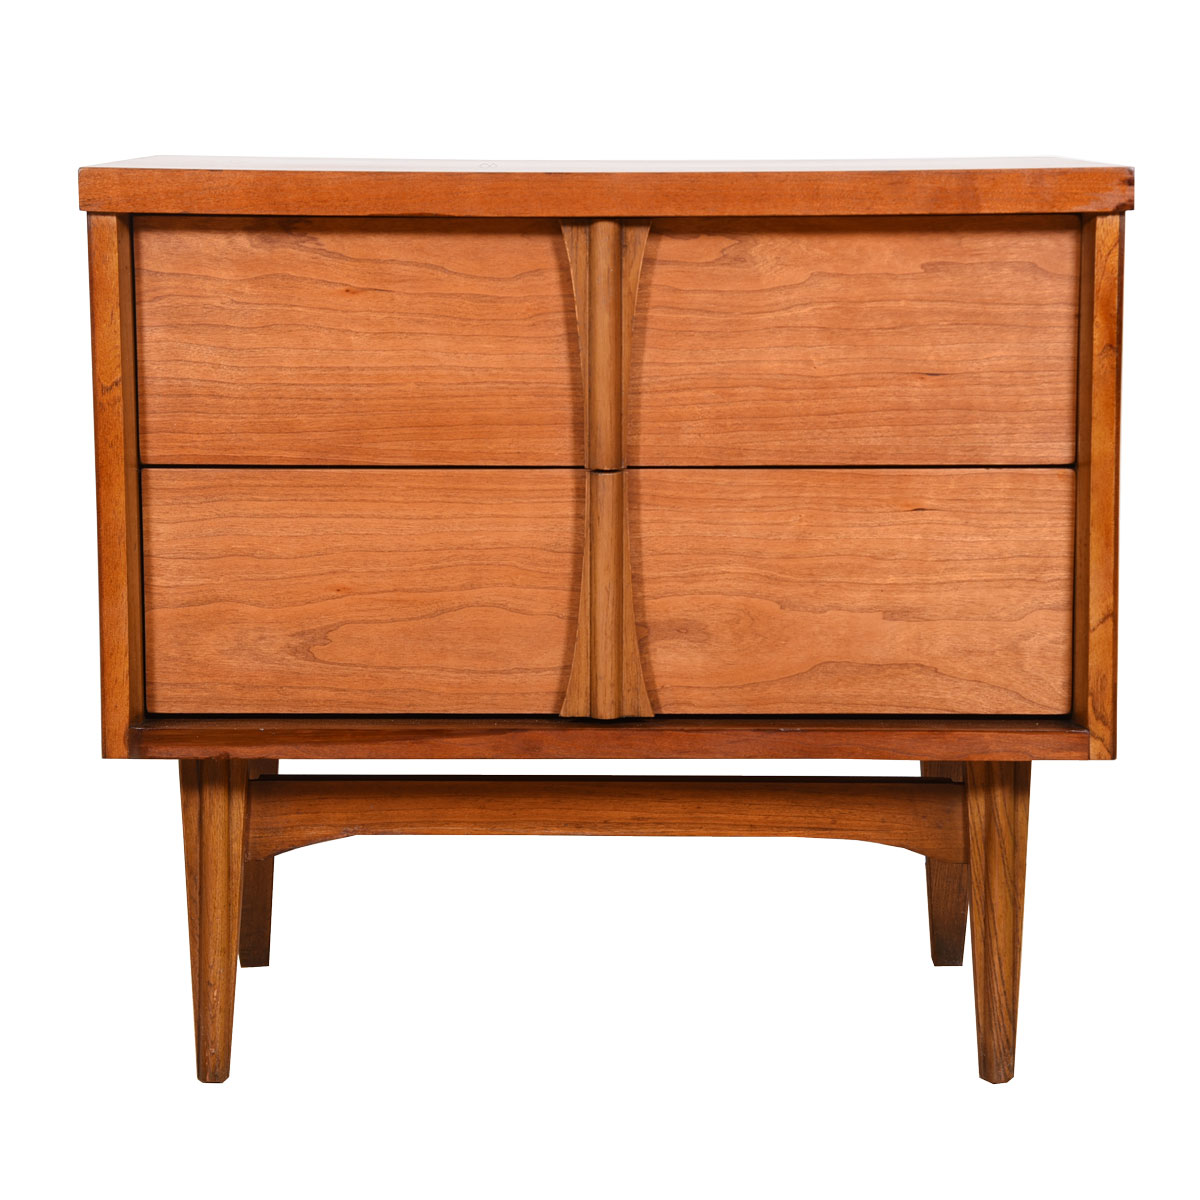 Mid-Century Modern 2-Drawer Nightstand with Sculptural Pulls